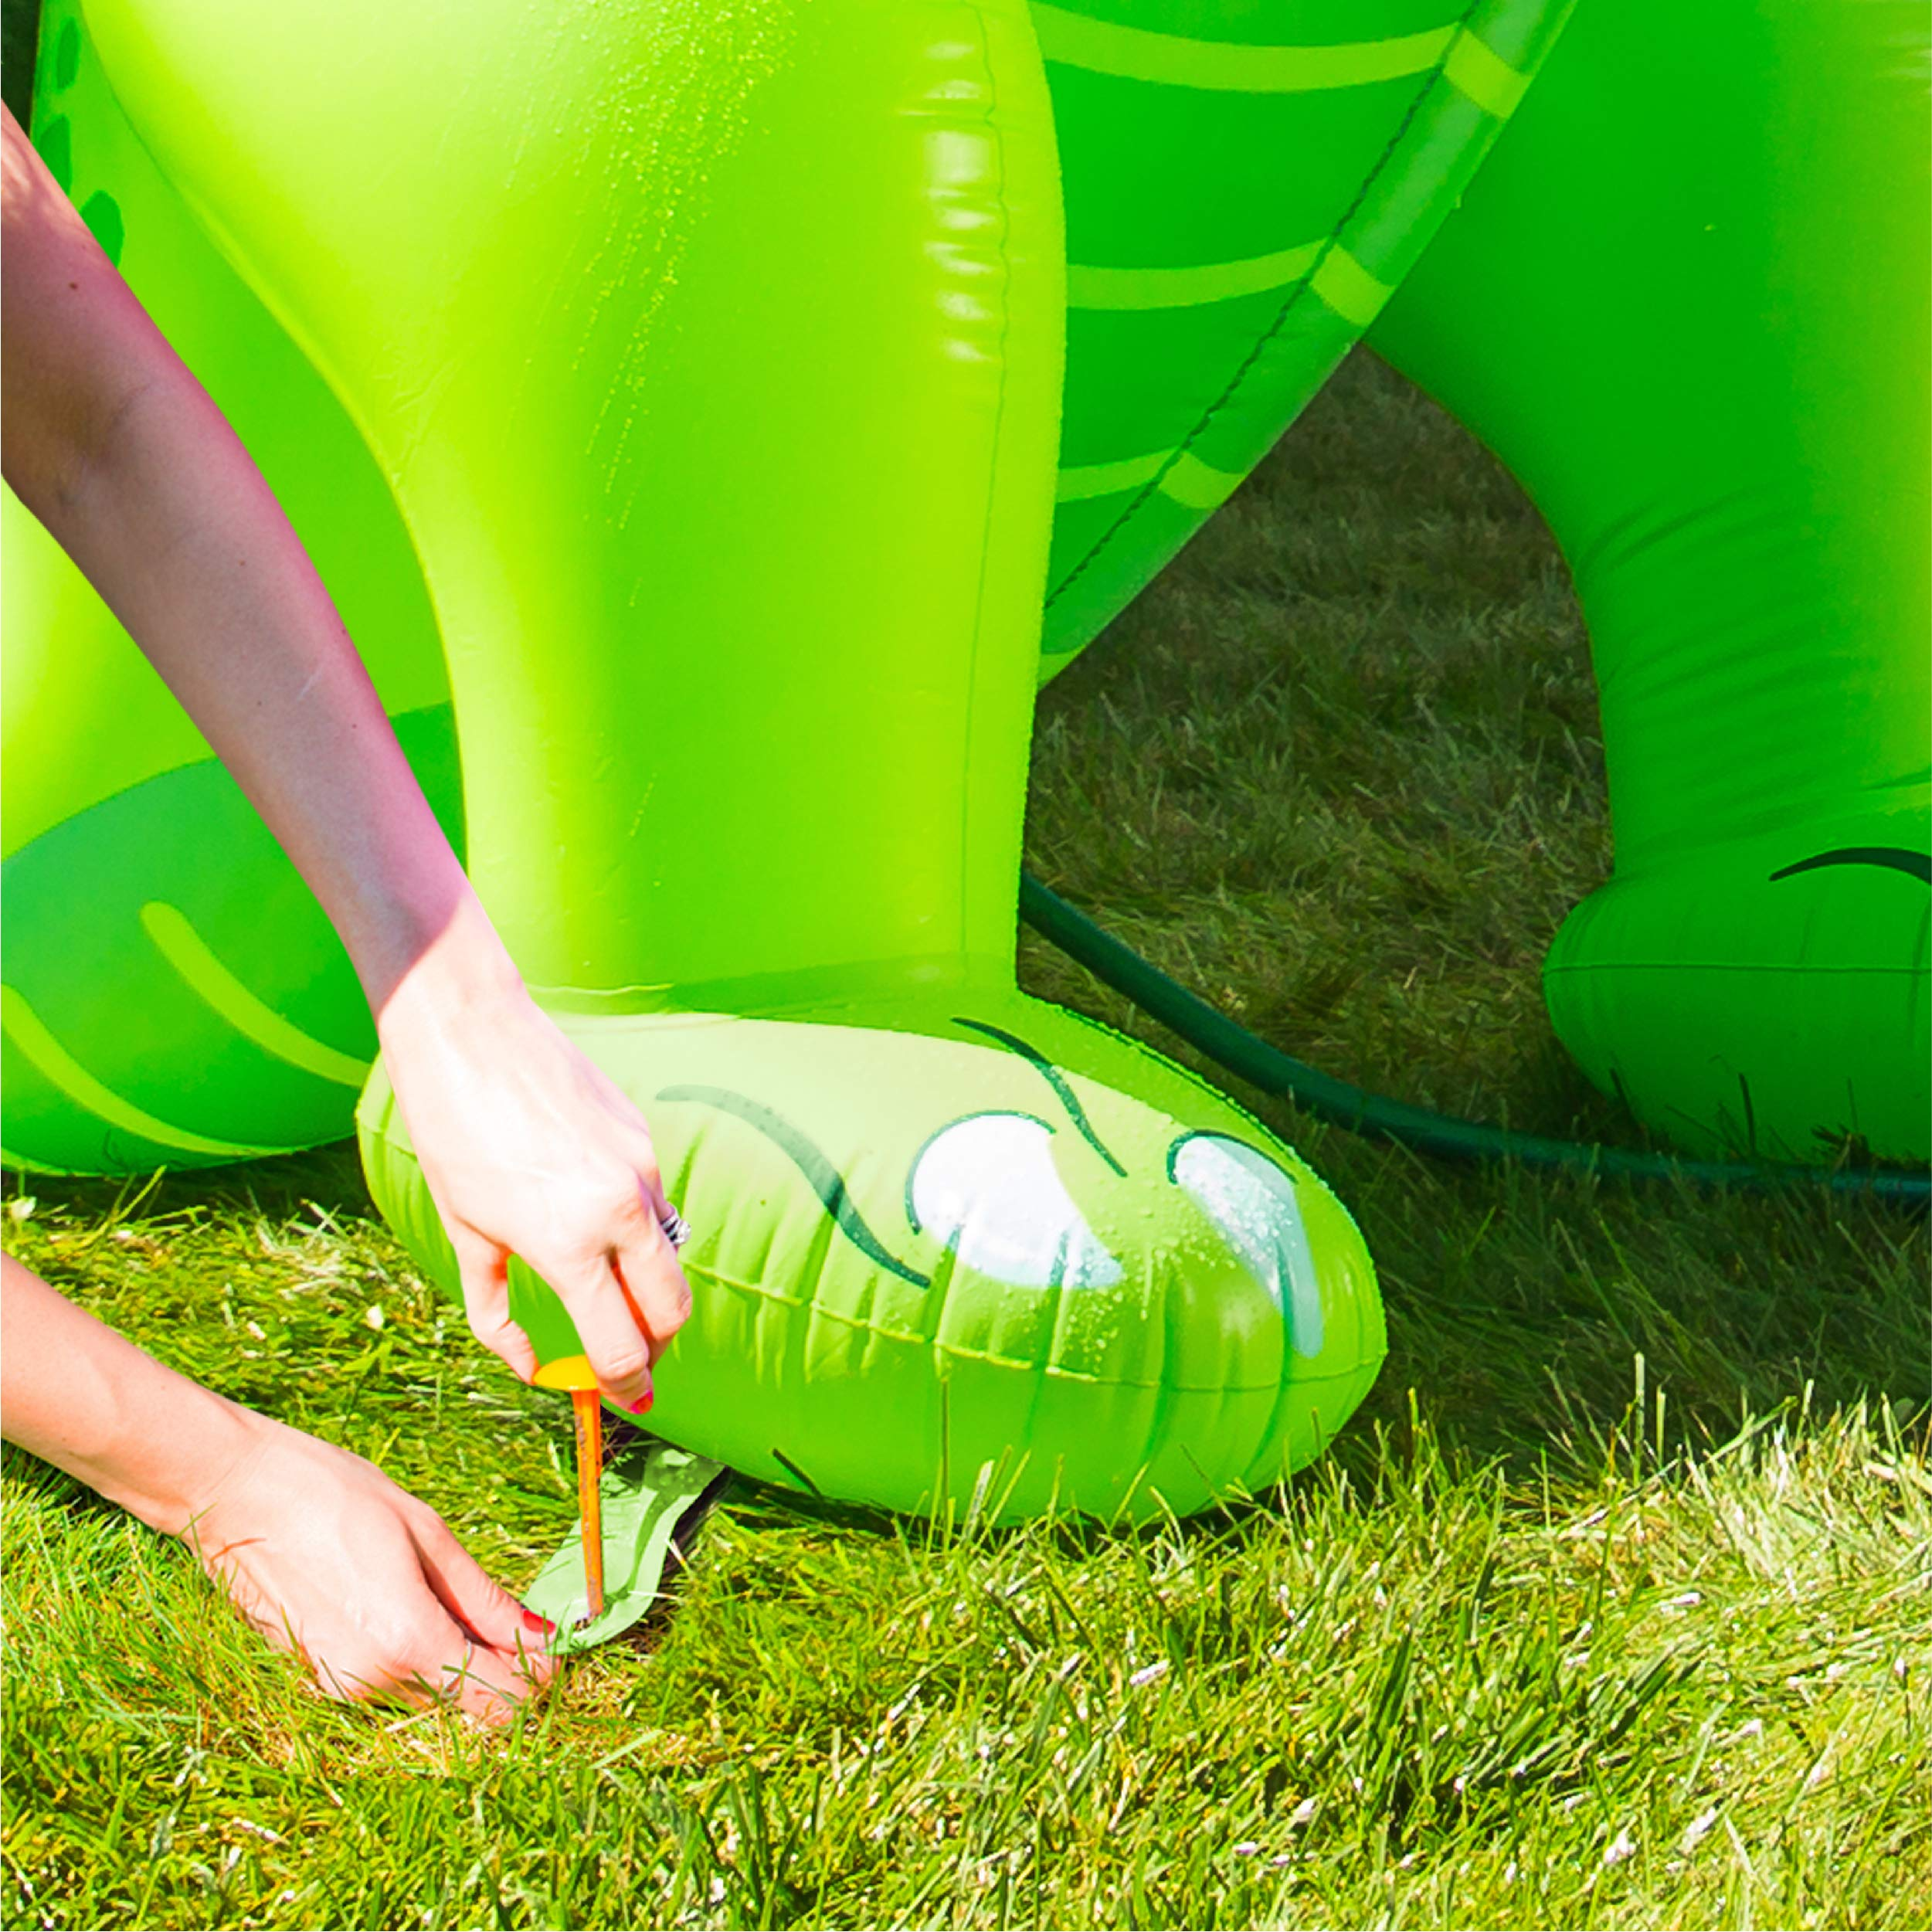 BigMouth Inc. Ginormous Inflatable Green Dinosaur Yard Summer Sprinkler, Stands Over 6 Feet Tall, Perfect for Summer Fun by BigMouth Inc (Image #7)